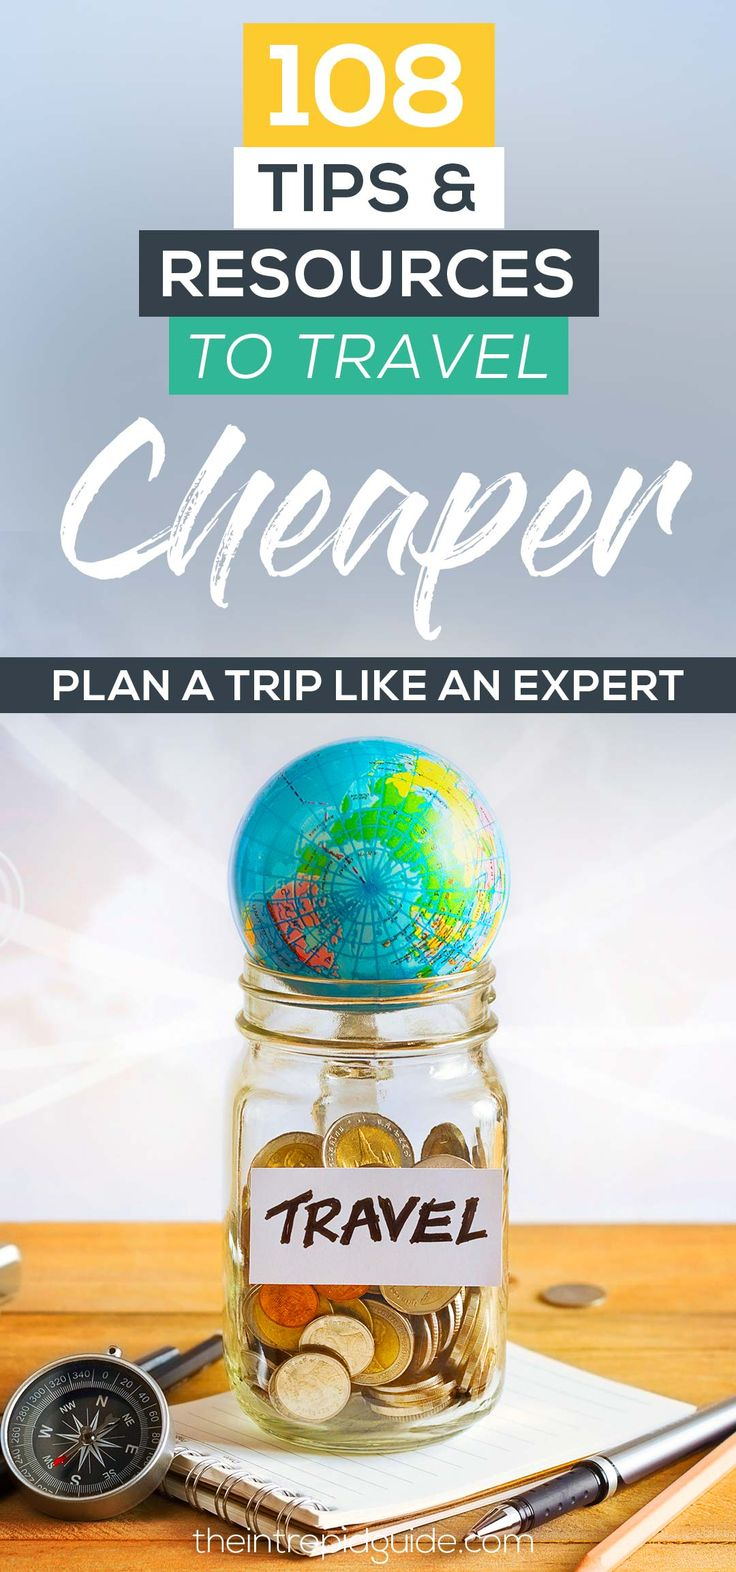 How to Travel Cheap: 108 Travel Resources